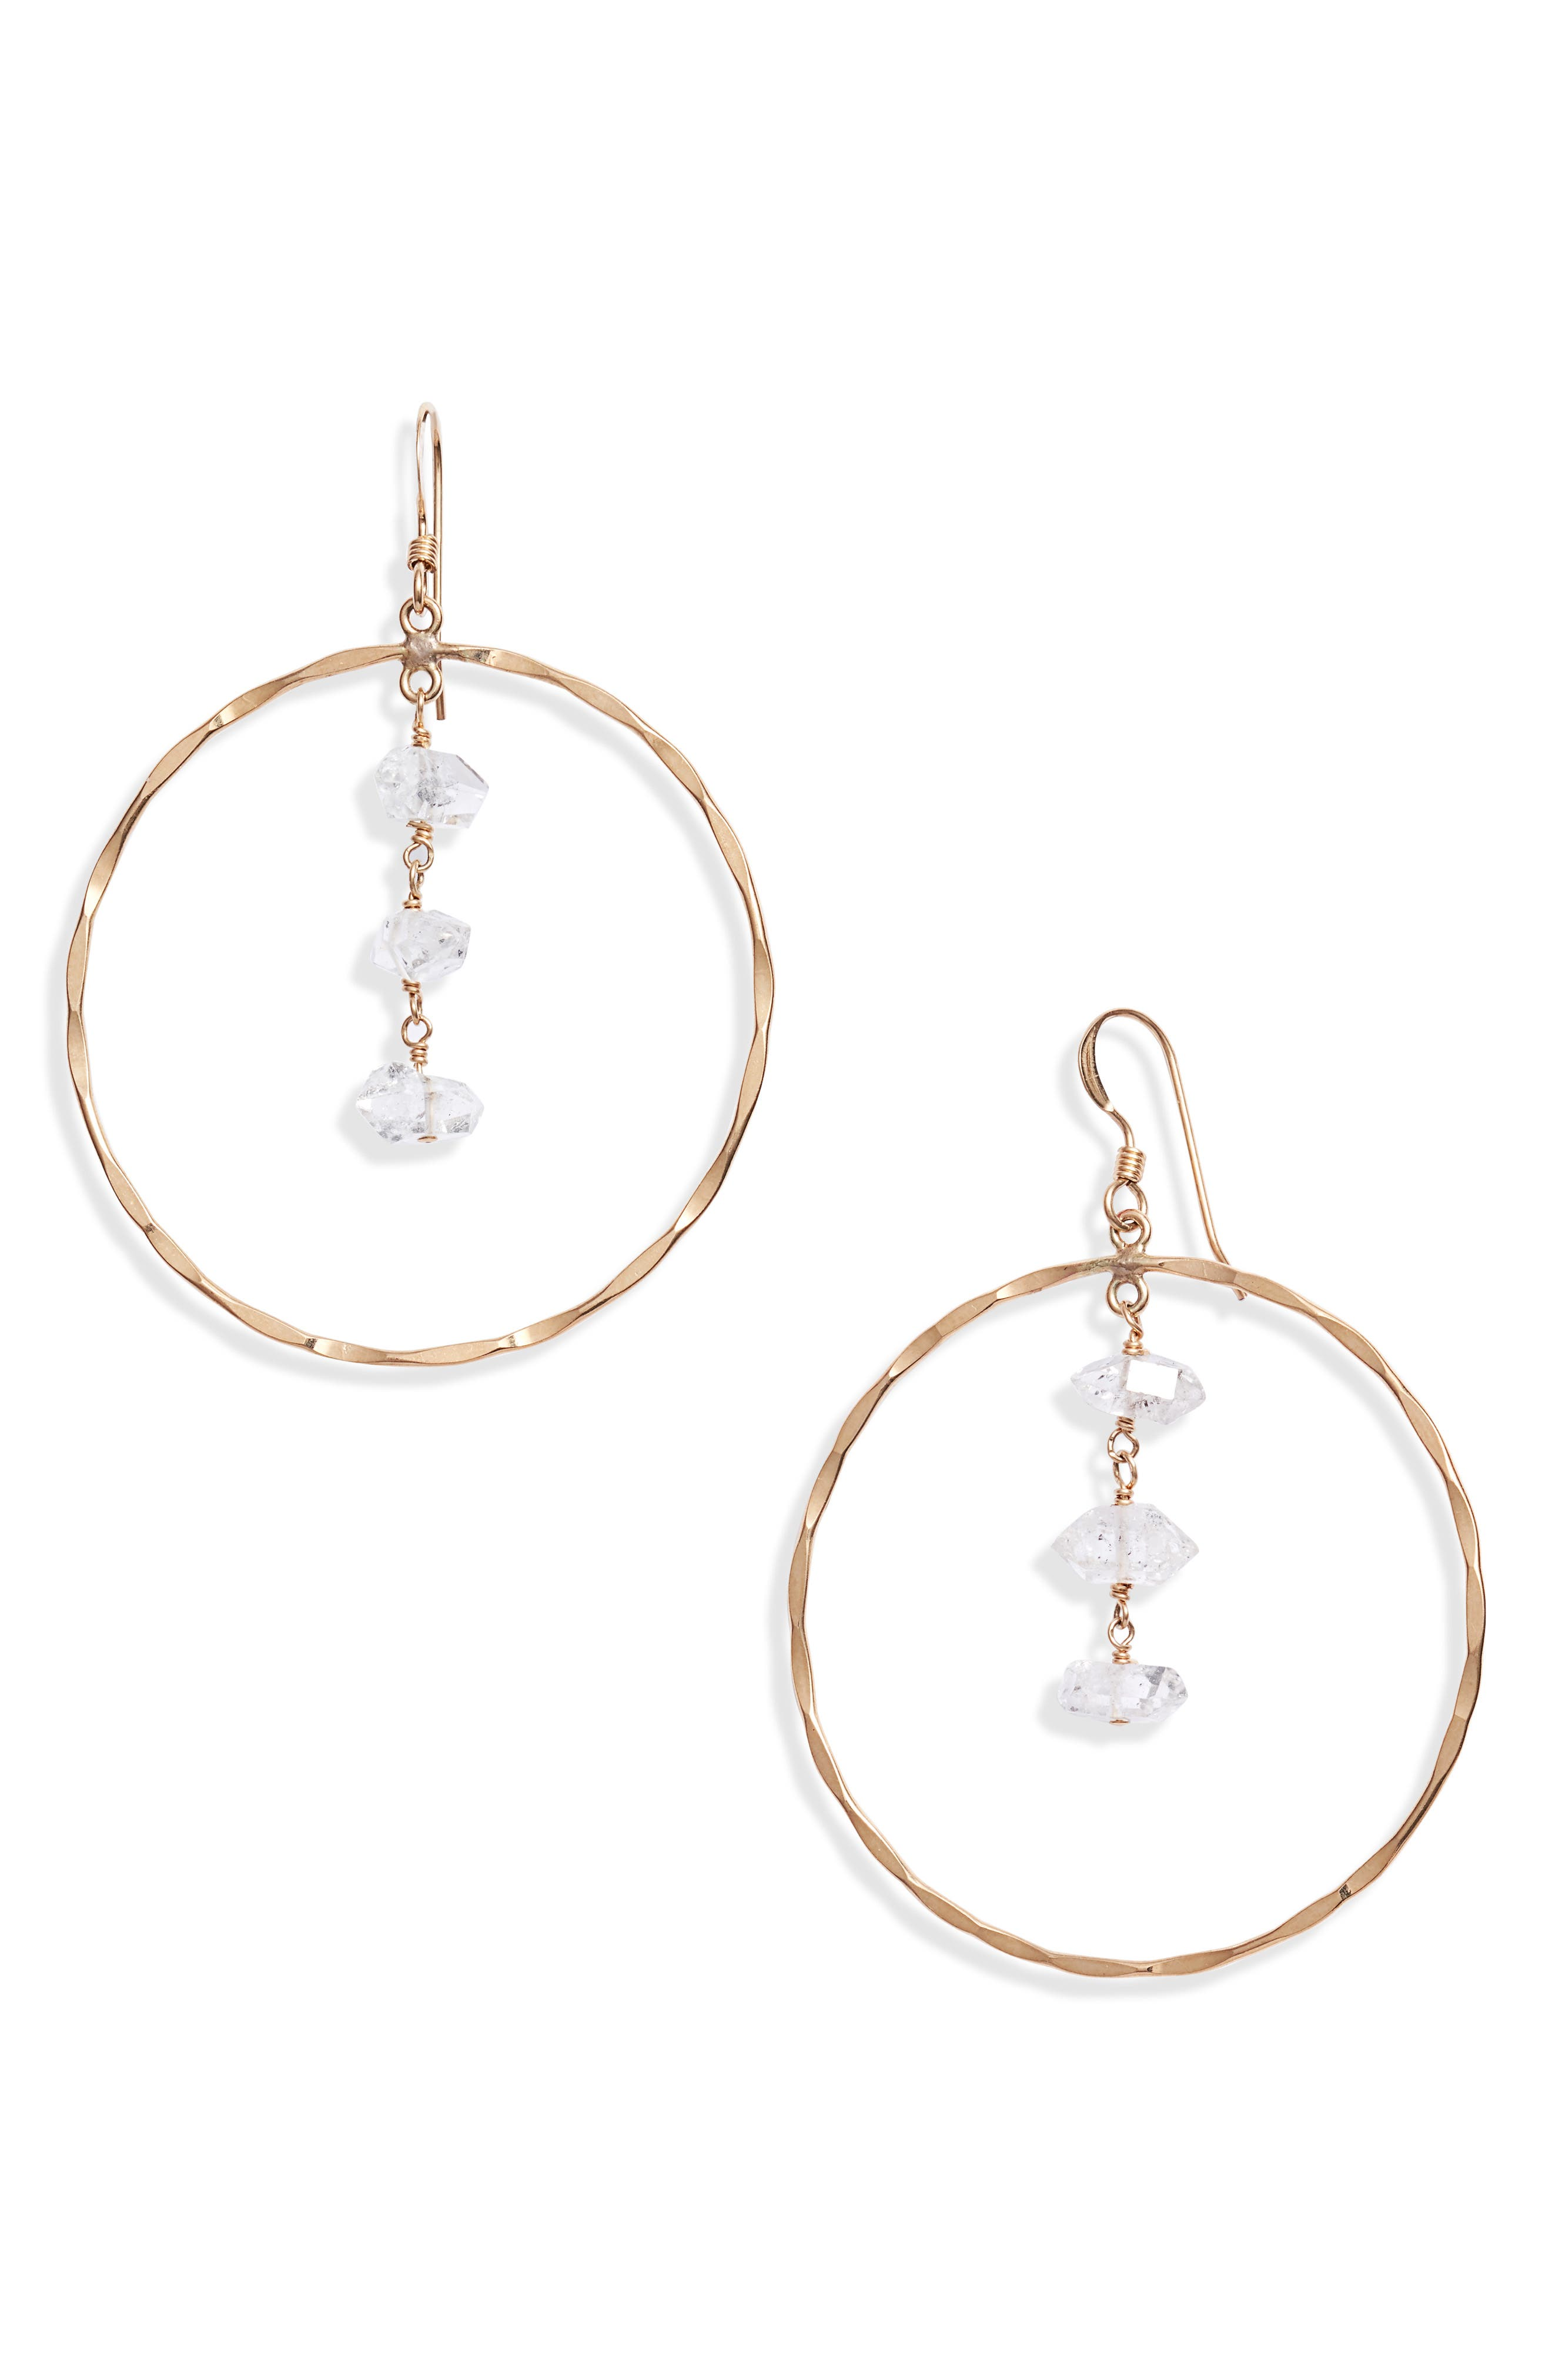 Herkimer diamonds shimmer within hammered hoops in these pretty drop earrings that are handmade in the USA. Style Name: Set & Stones Marren Drop Hoop Earrings. Style Number: 5966478. Available in stores.